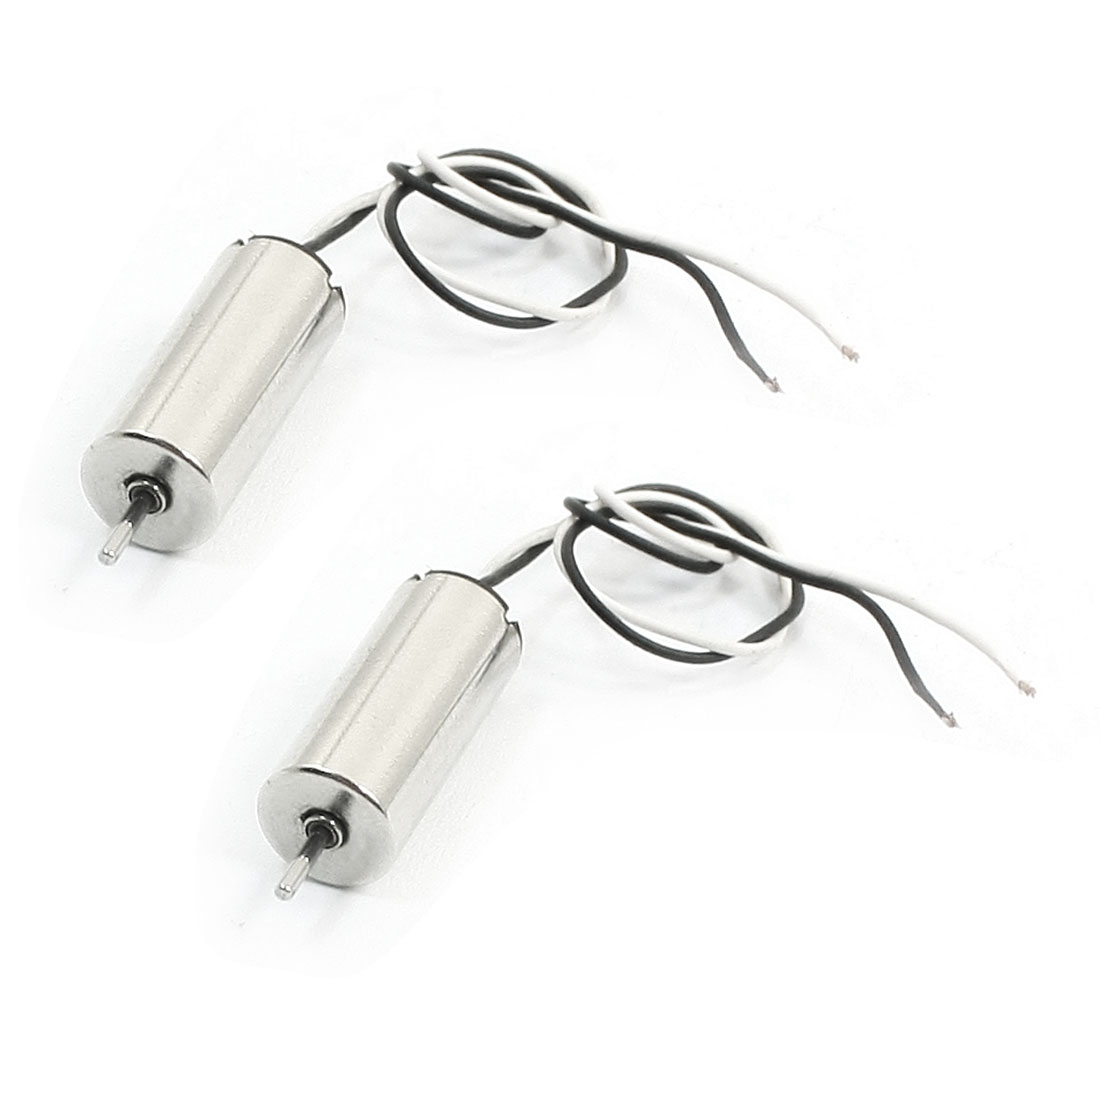 2PCS RC Aircraft Model Magnetic Micro Coreless Motor 30000rpm DC 3.7V